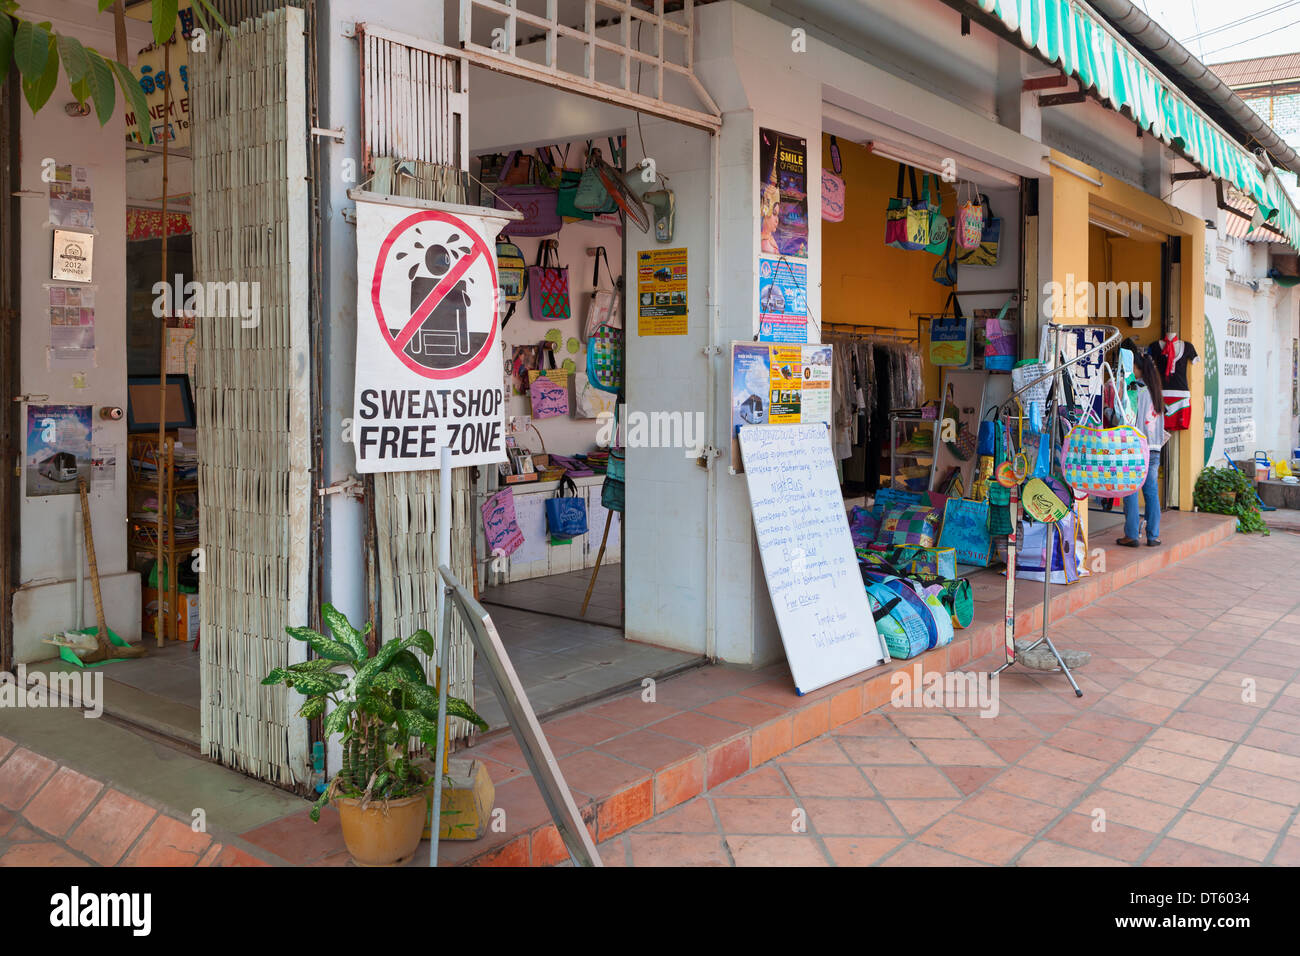 Sweatshop free zone shop, Cambodia - Stock Image